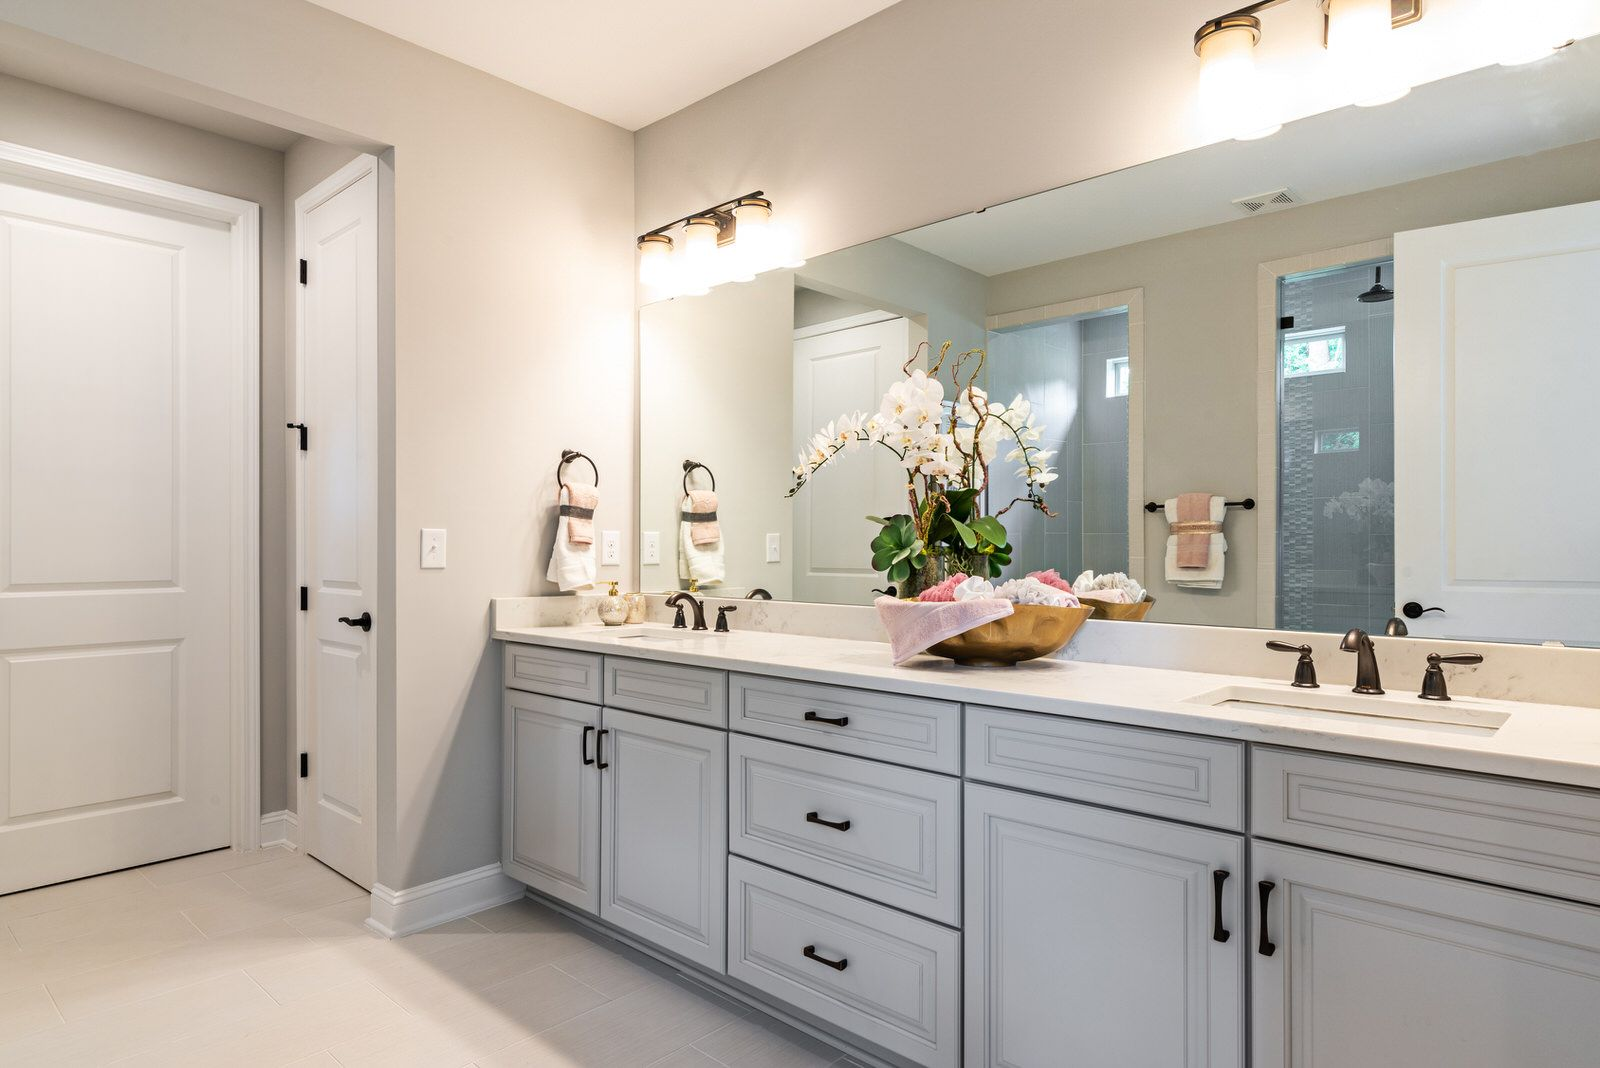 Bathroom featured in the Pikewood By Taylor Morrison in Charlotte, NC